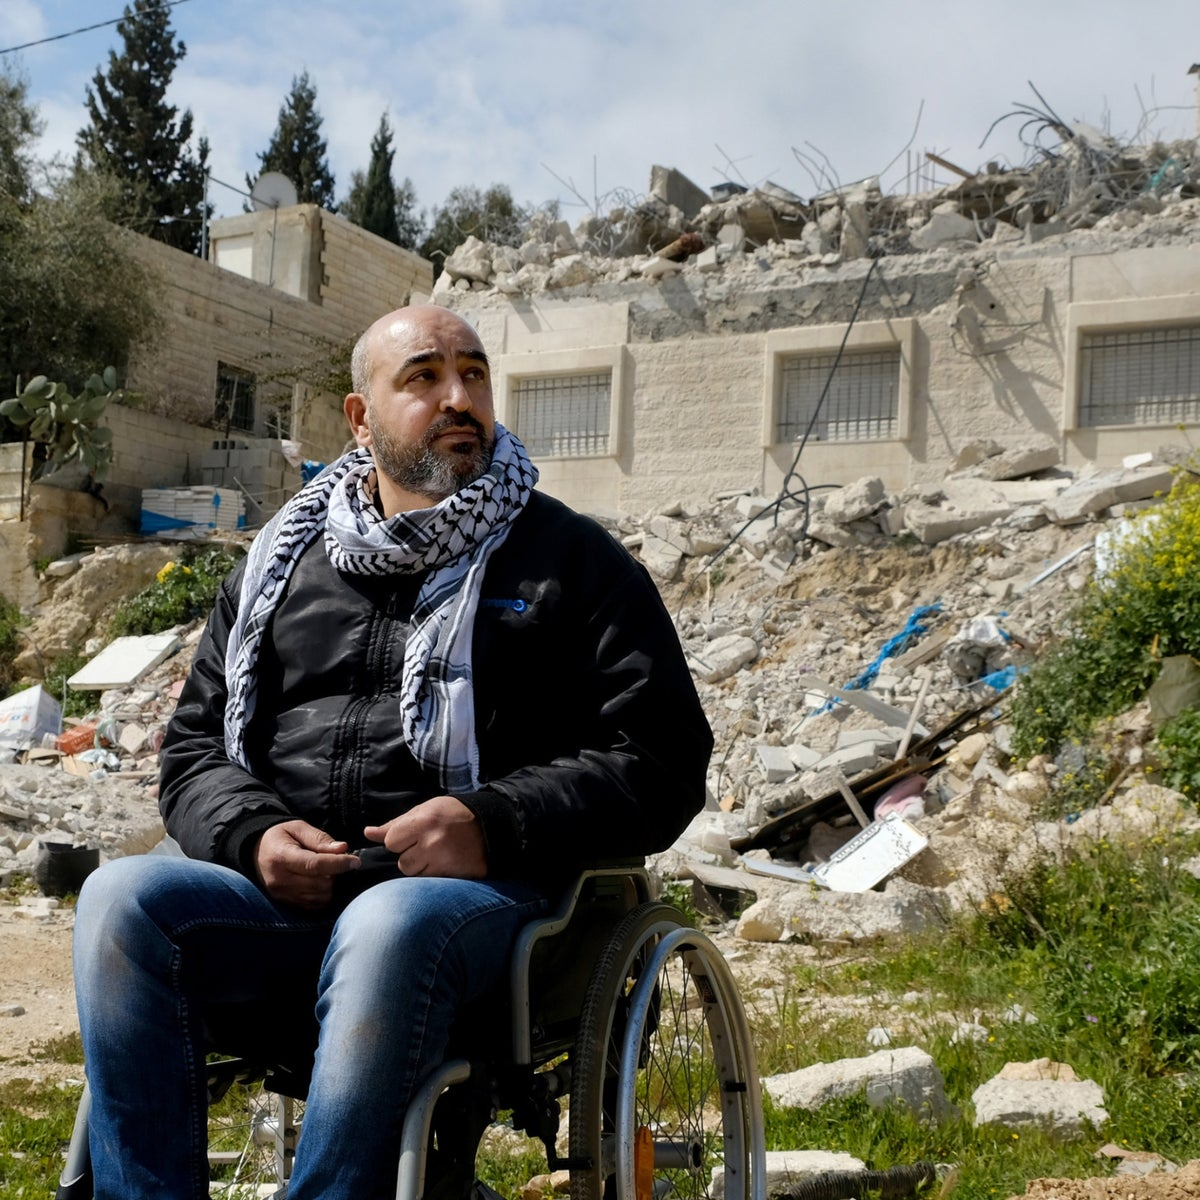 Khatham Abu Riala in front of what used to be his home in Isawiyah.